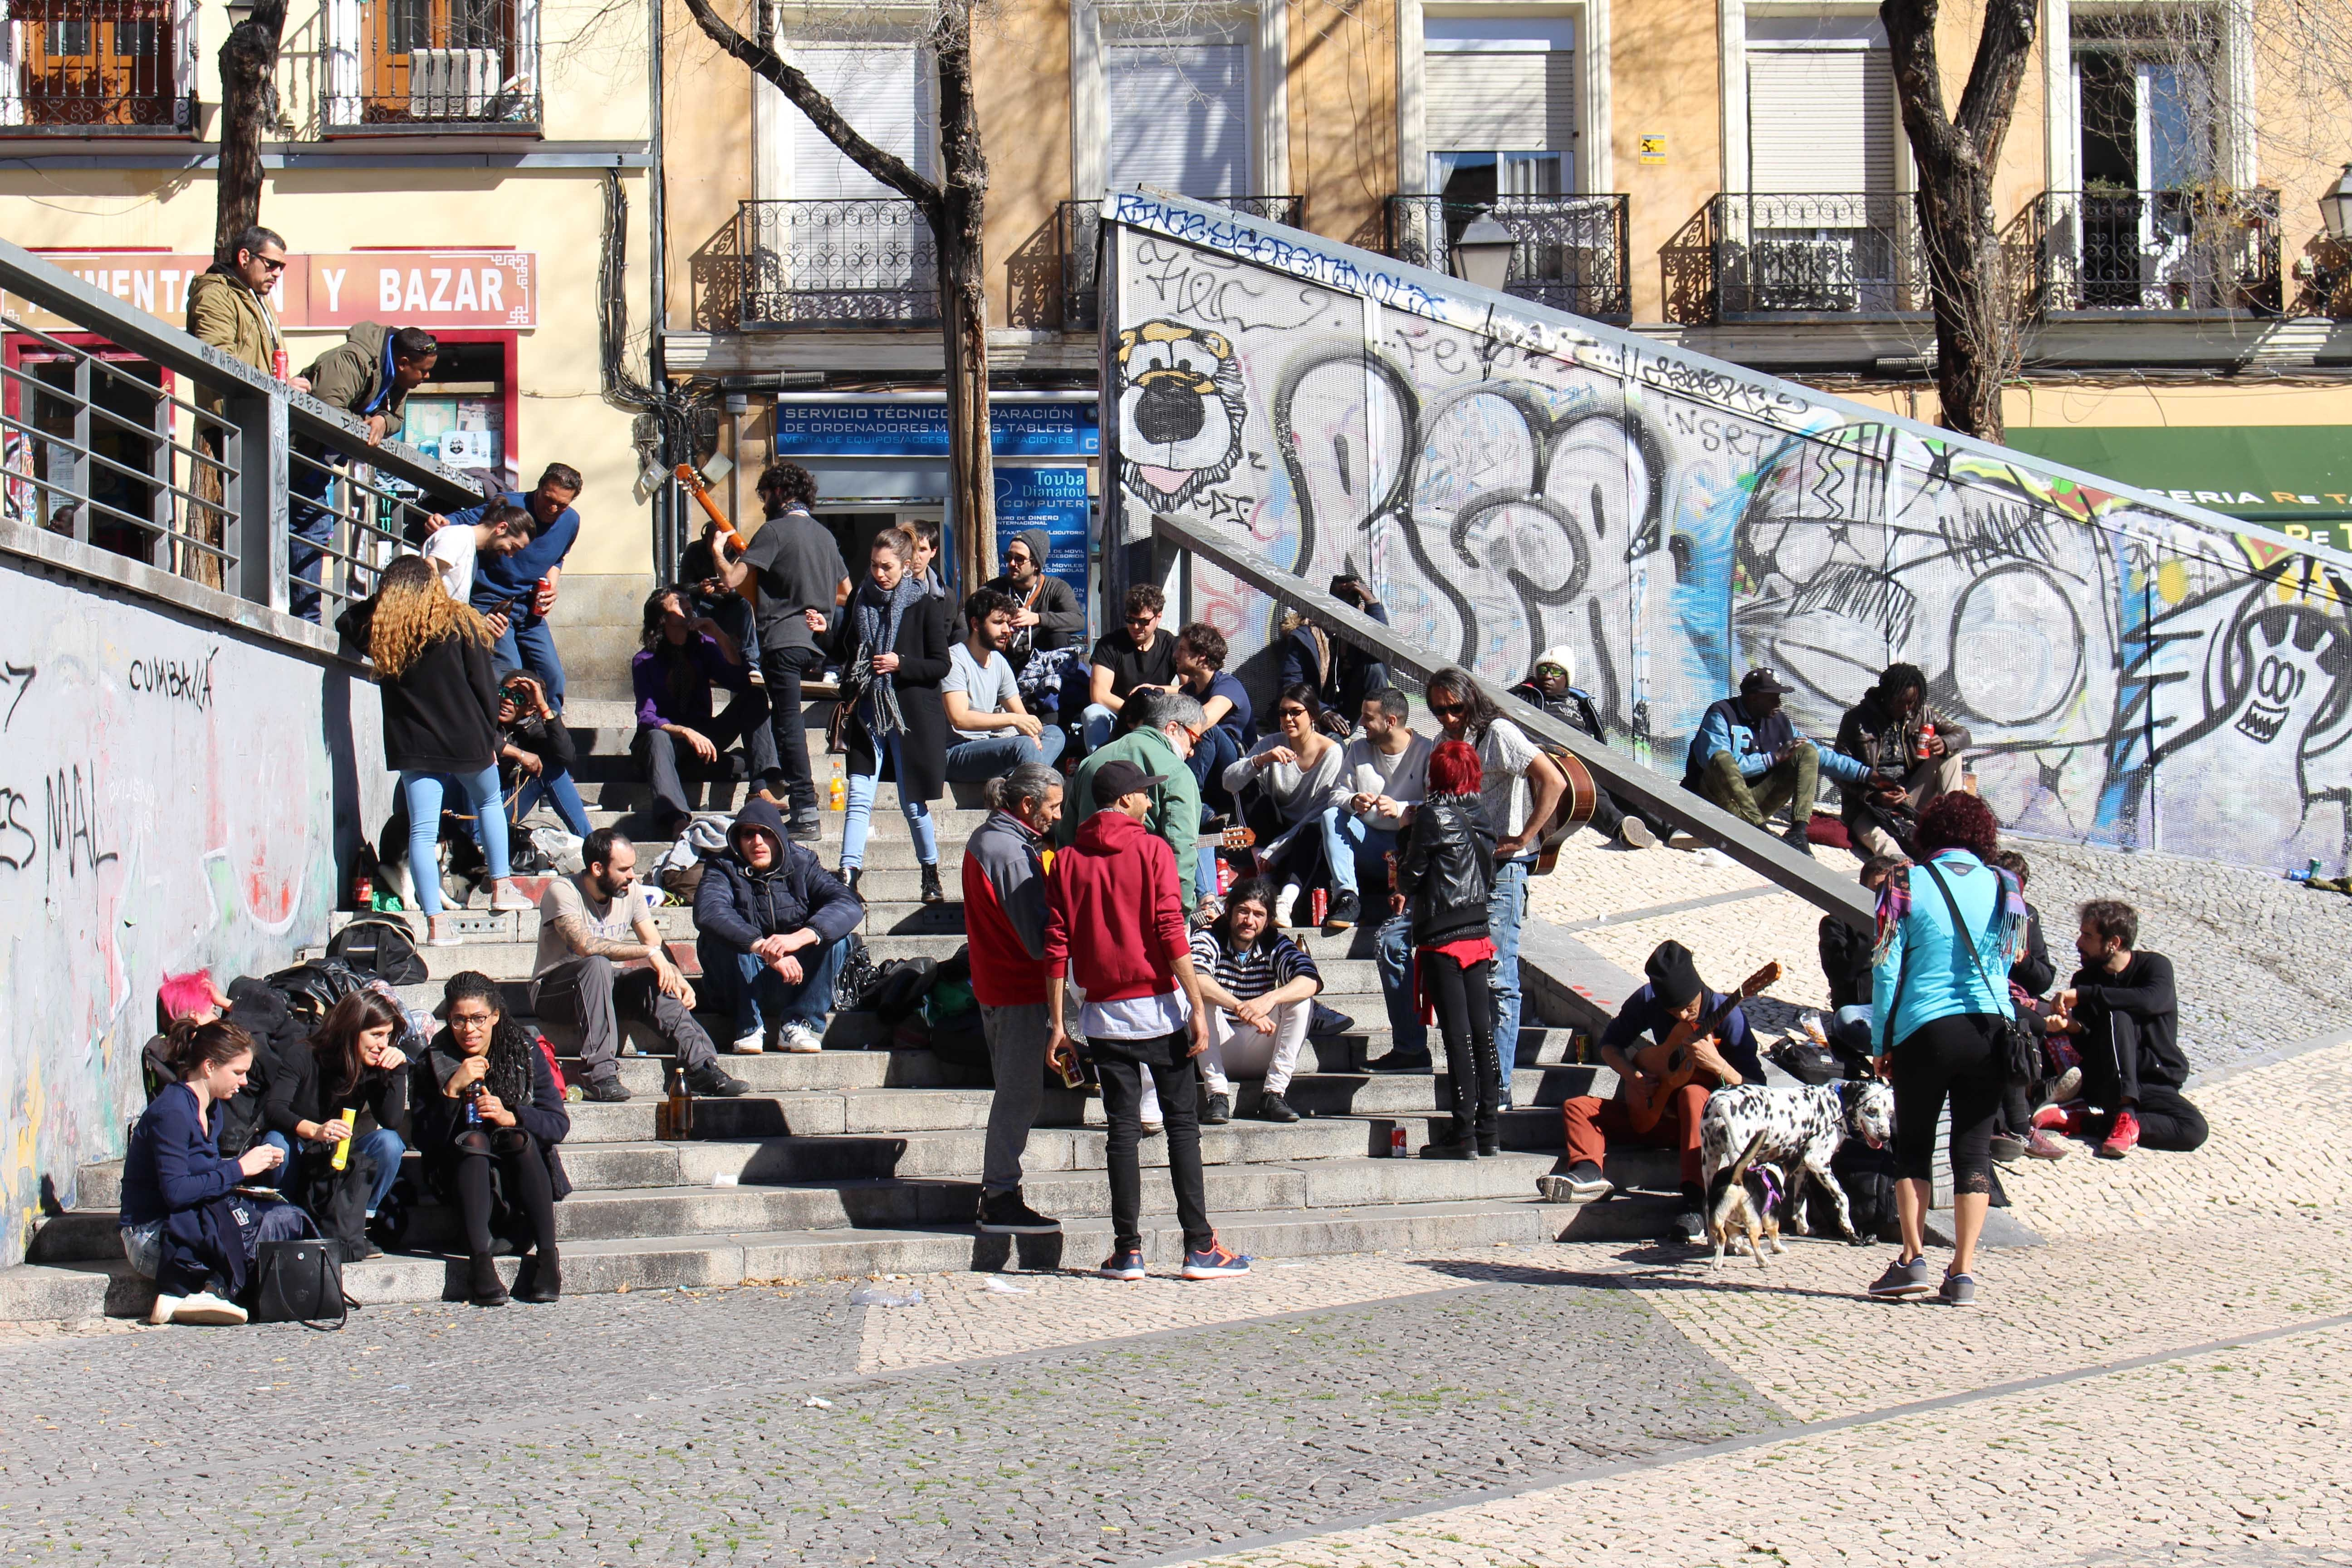 Locals meet for beers and impromptu jam sessions on the steps of Plaza de Agustín Lara.